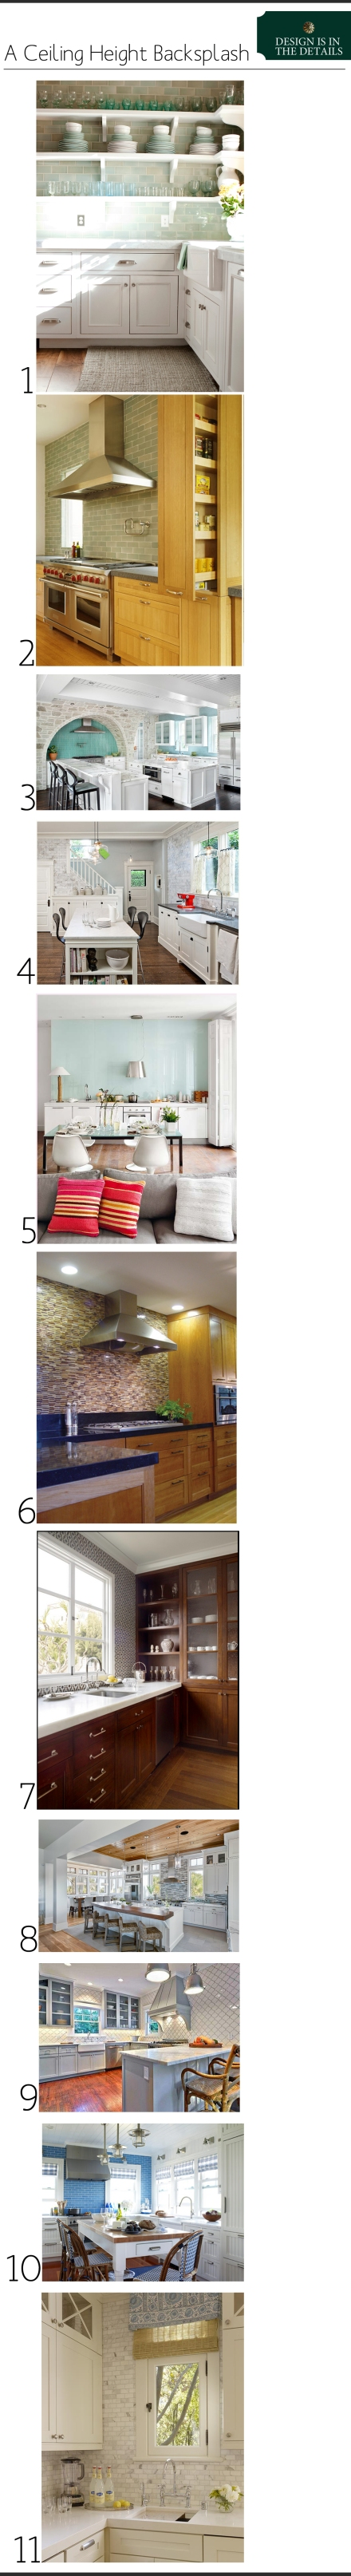 counter-to-ceiling-backsplash copy